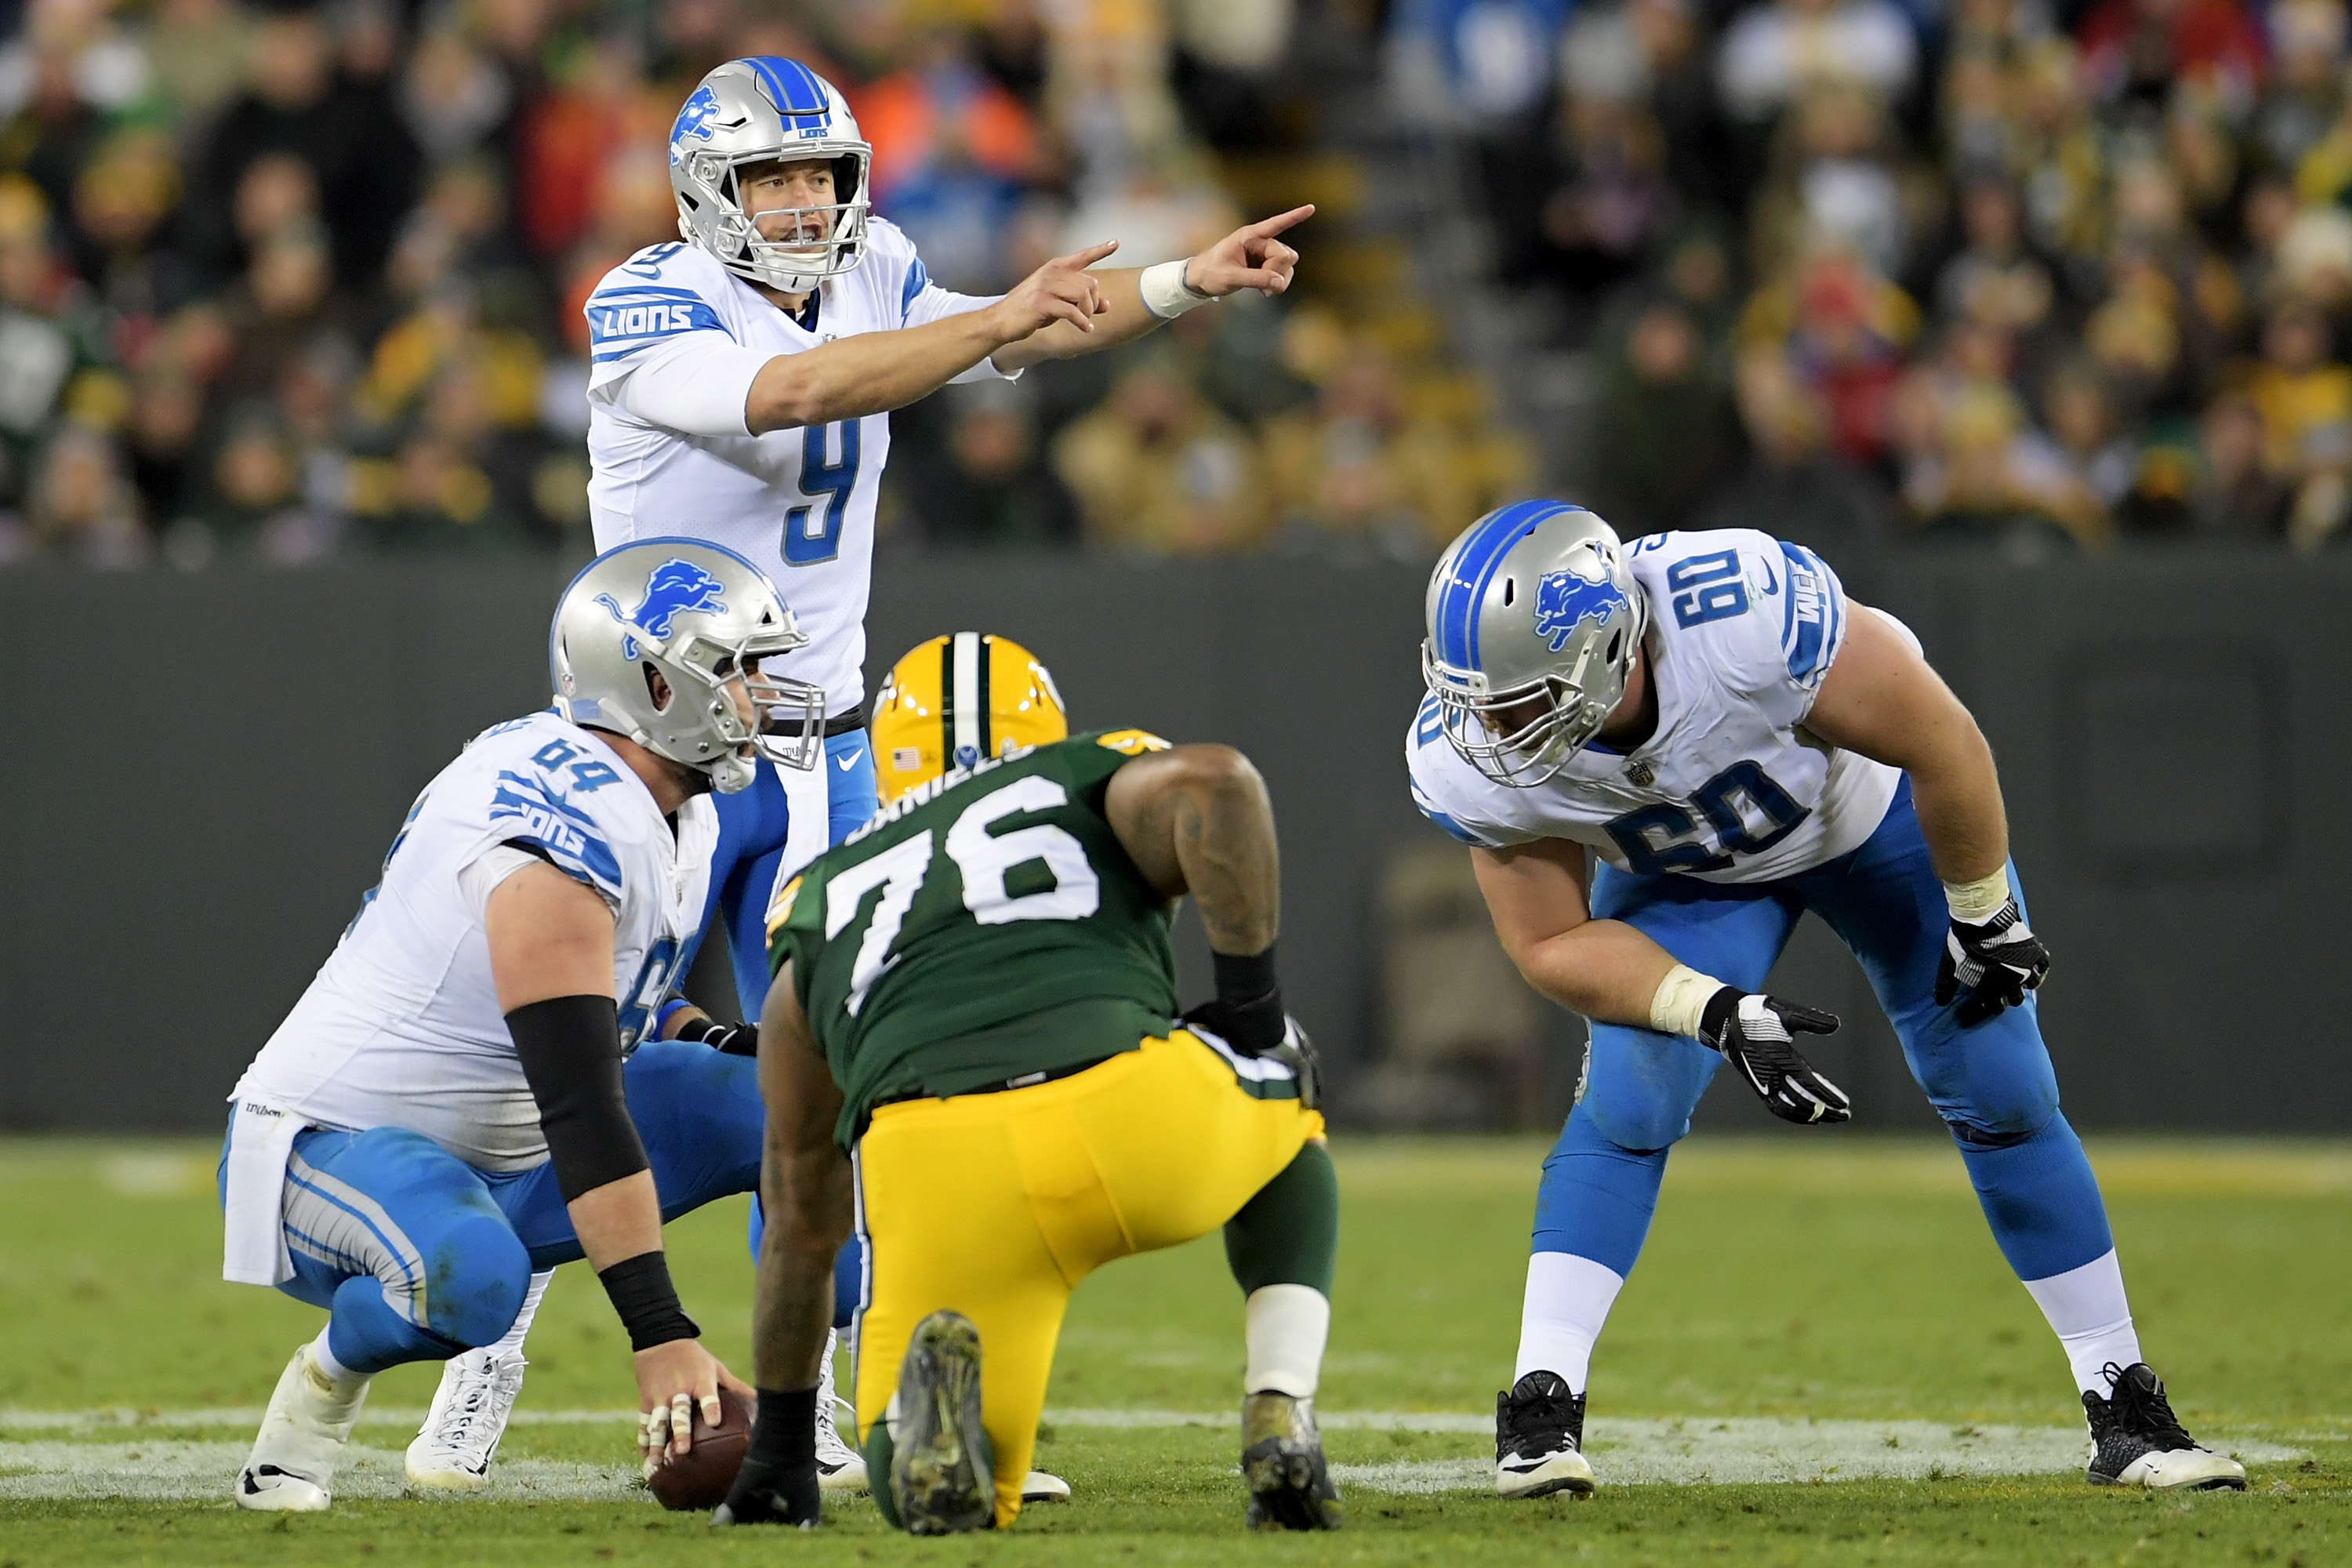 Lions survive a scare, come back to beat Browns